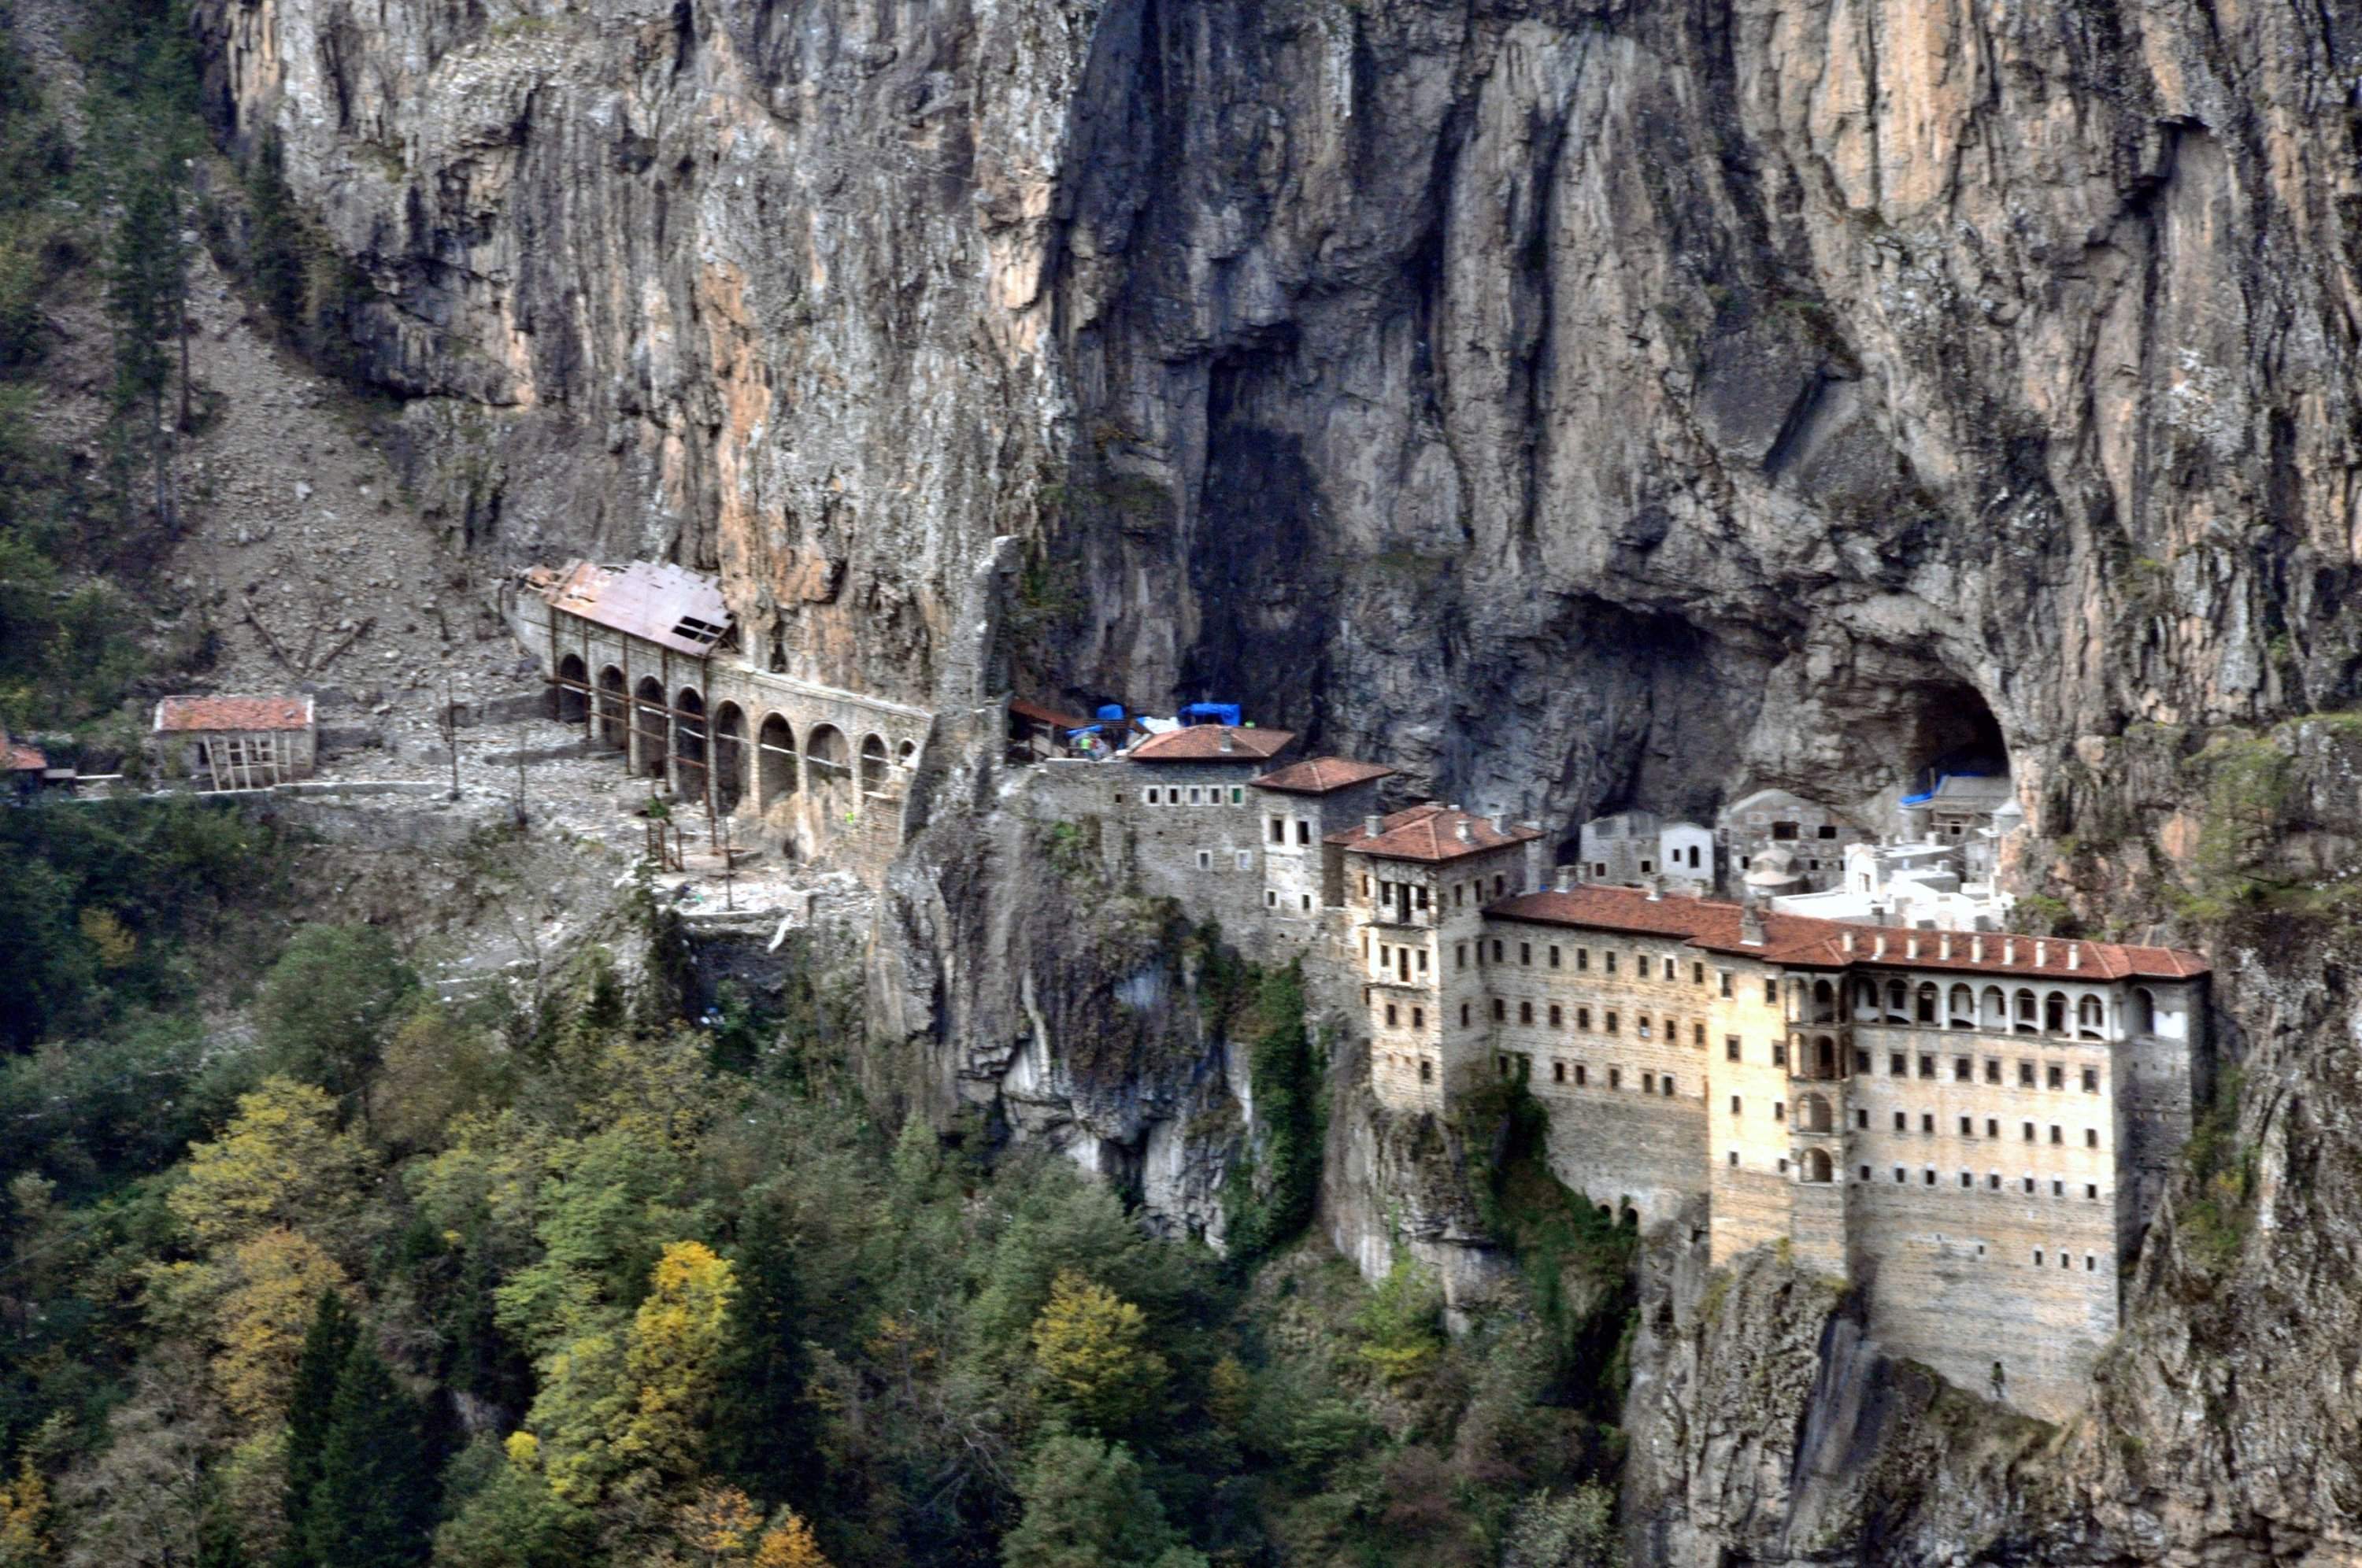 The first part of Sümela Monastery has been reopened to visitors. (DHA PHOTO)